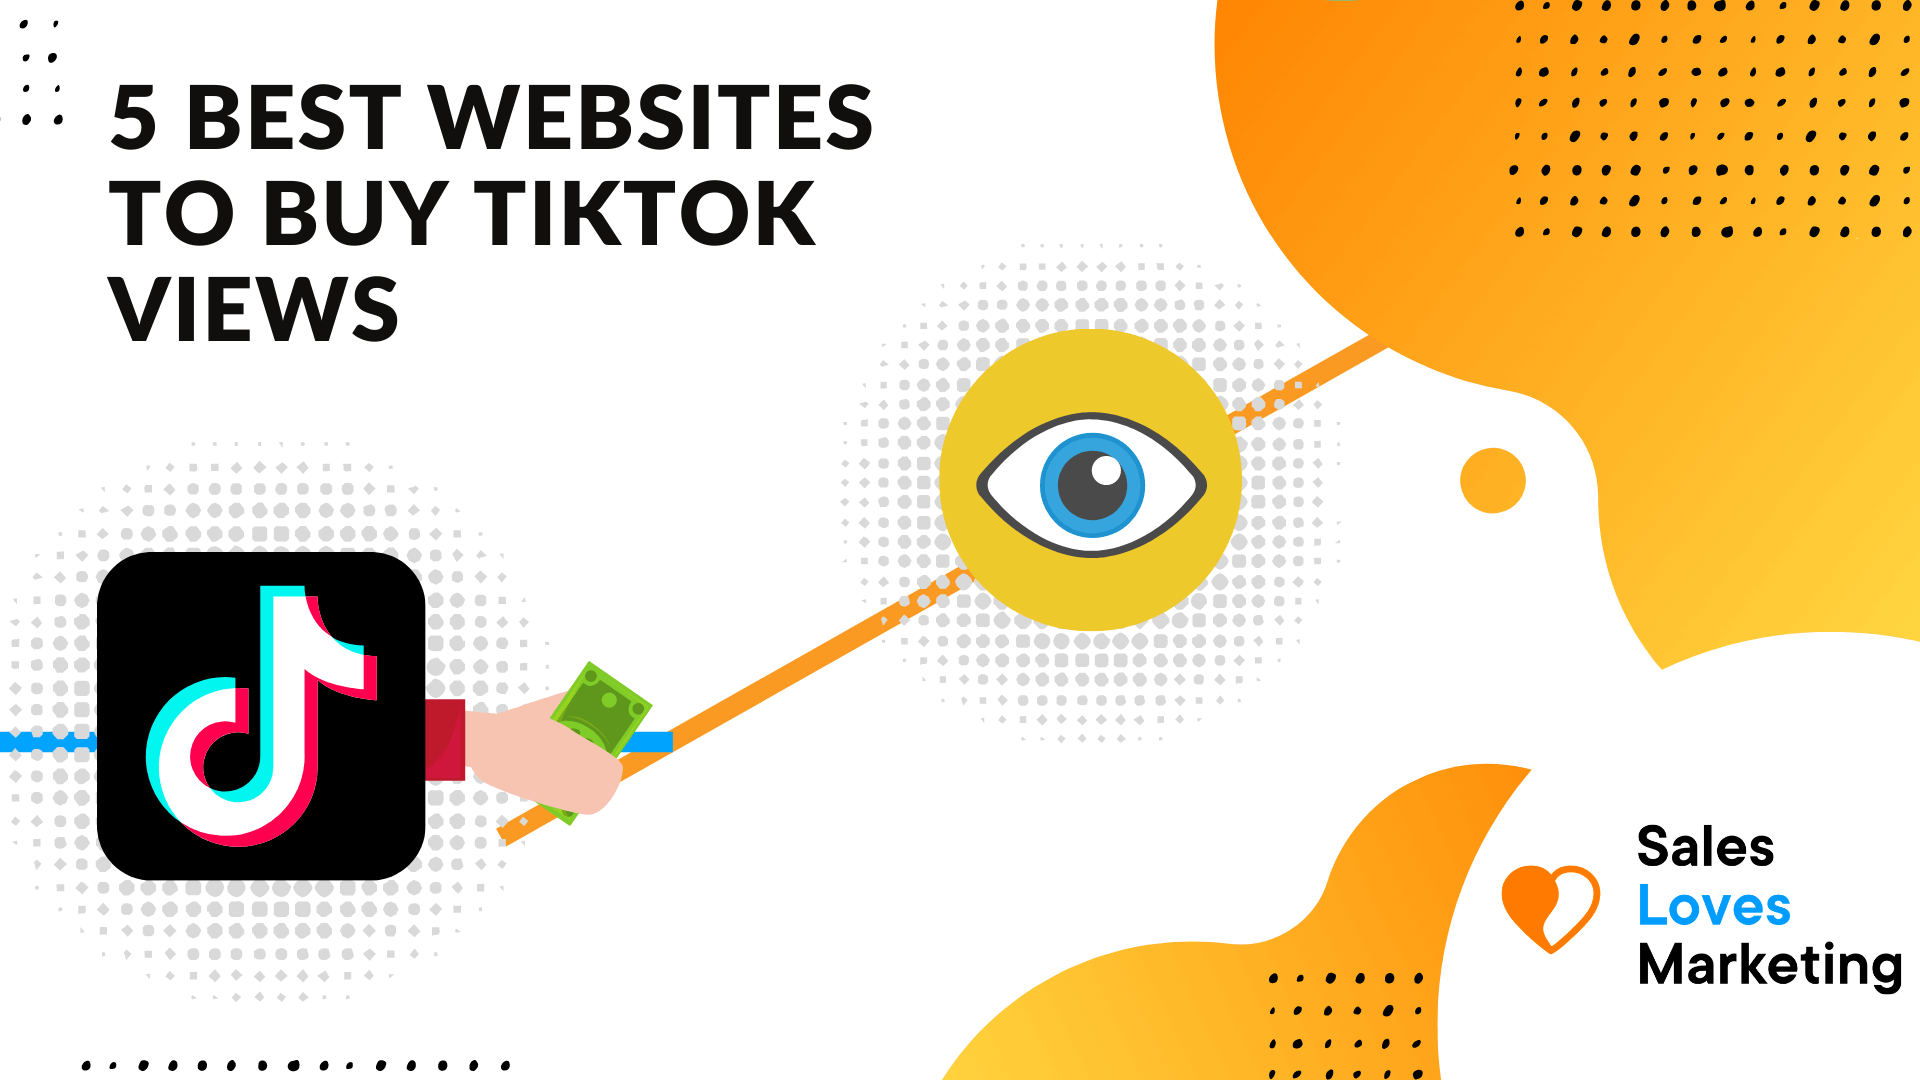 5 best websites to buy tiktok views to go viral on tiktok